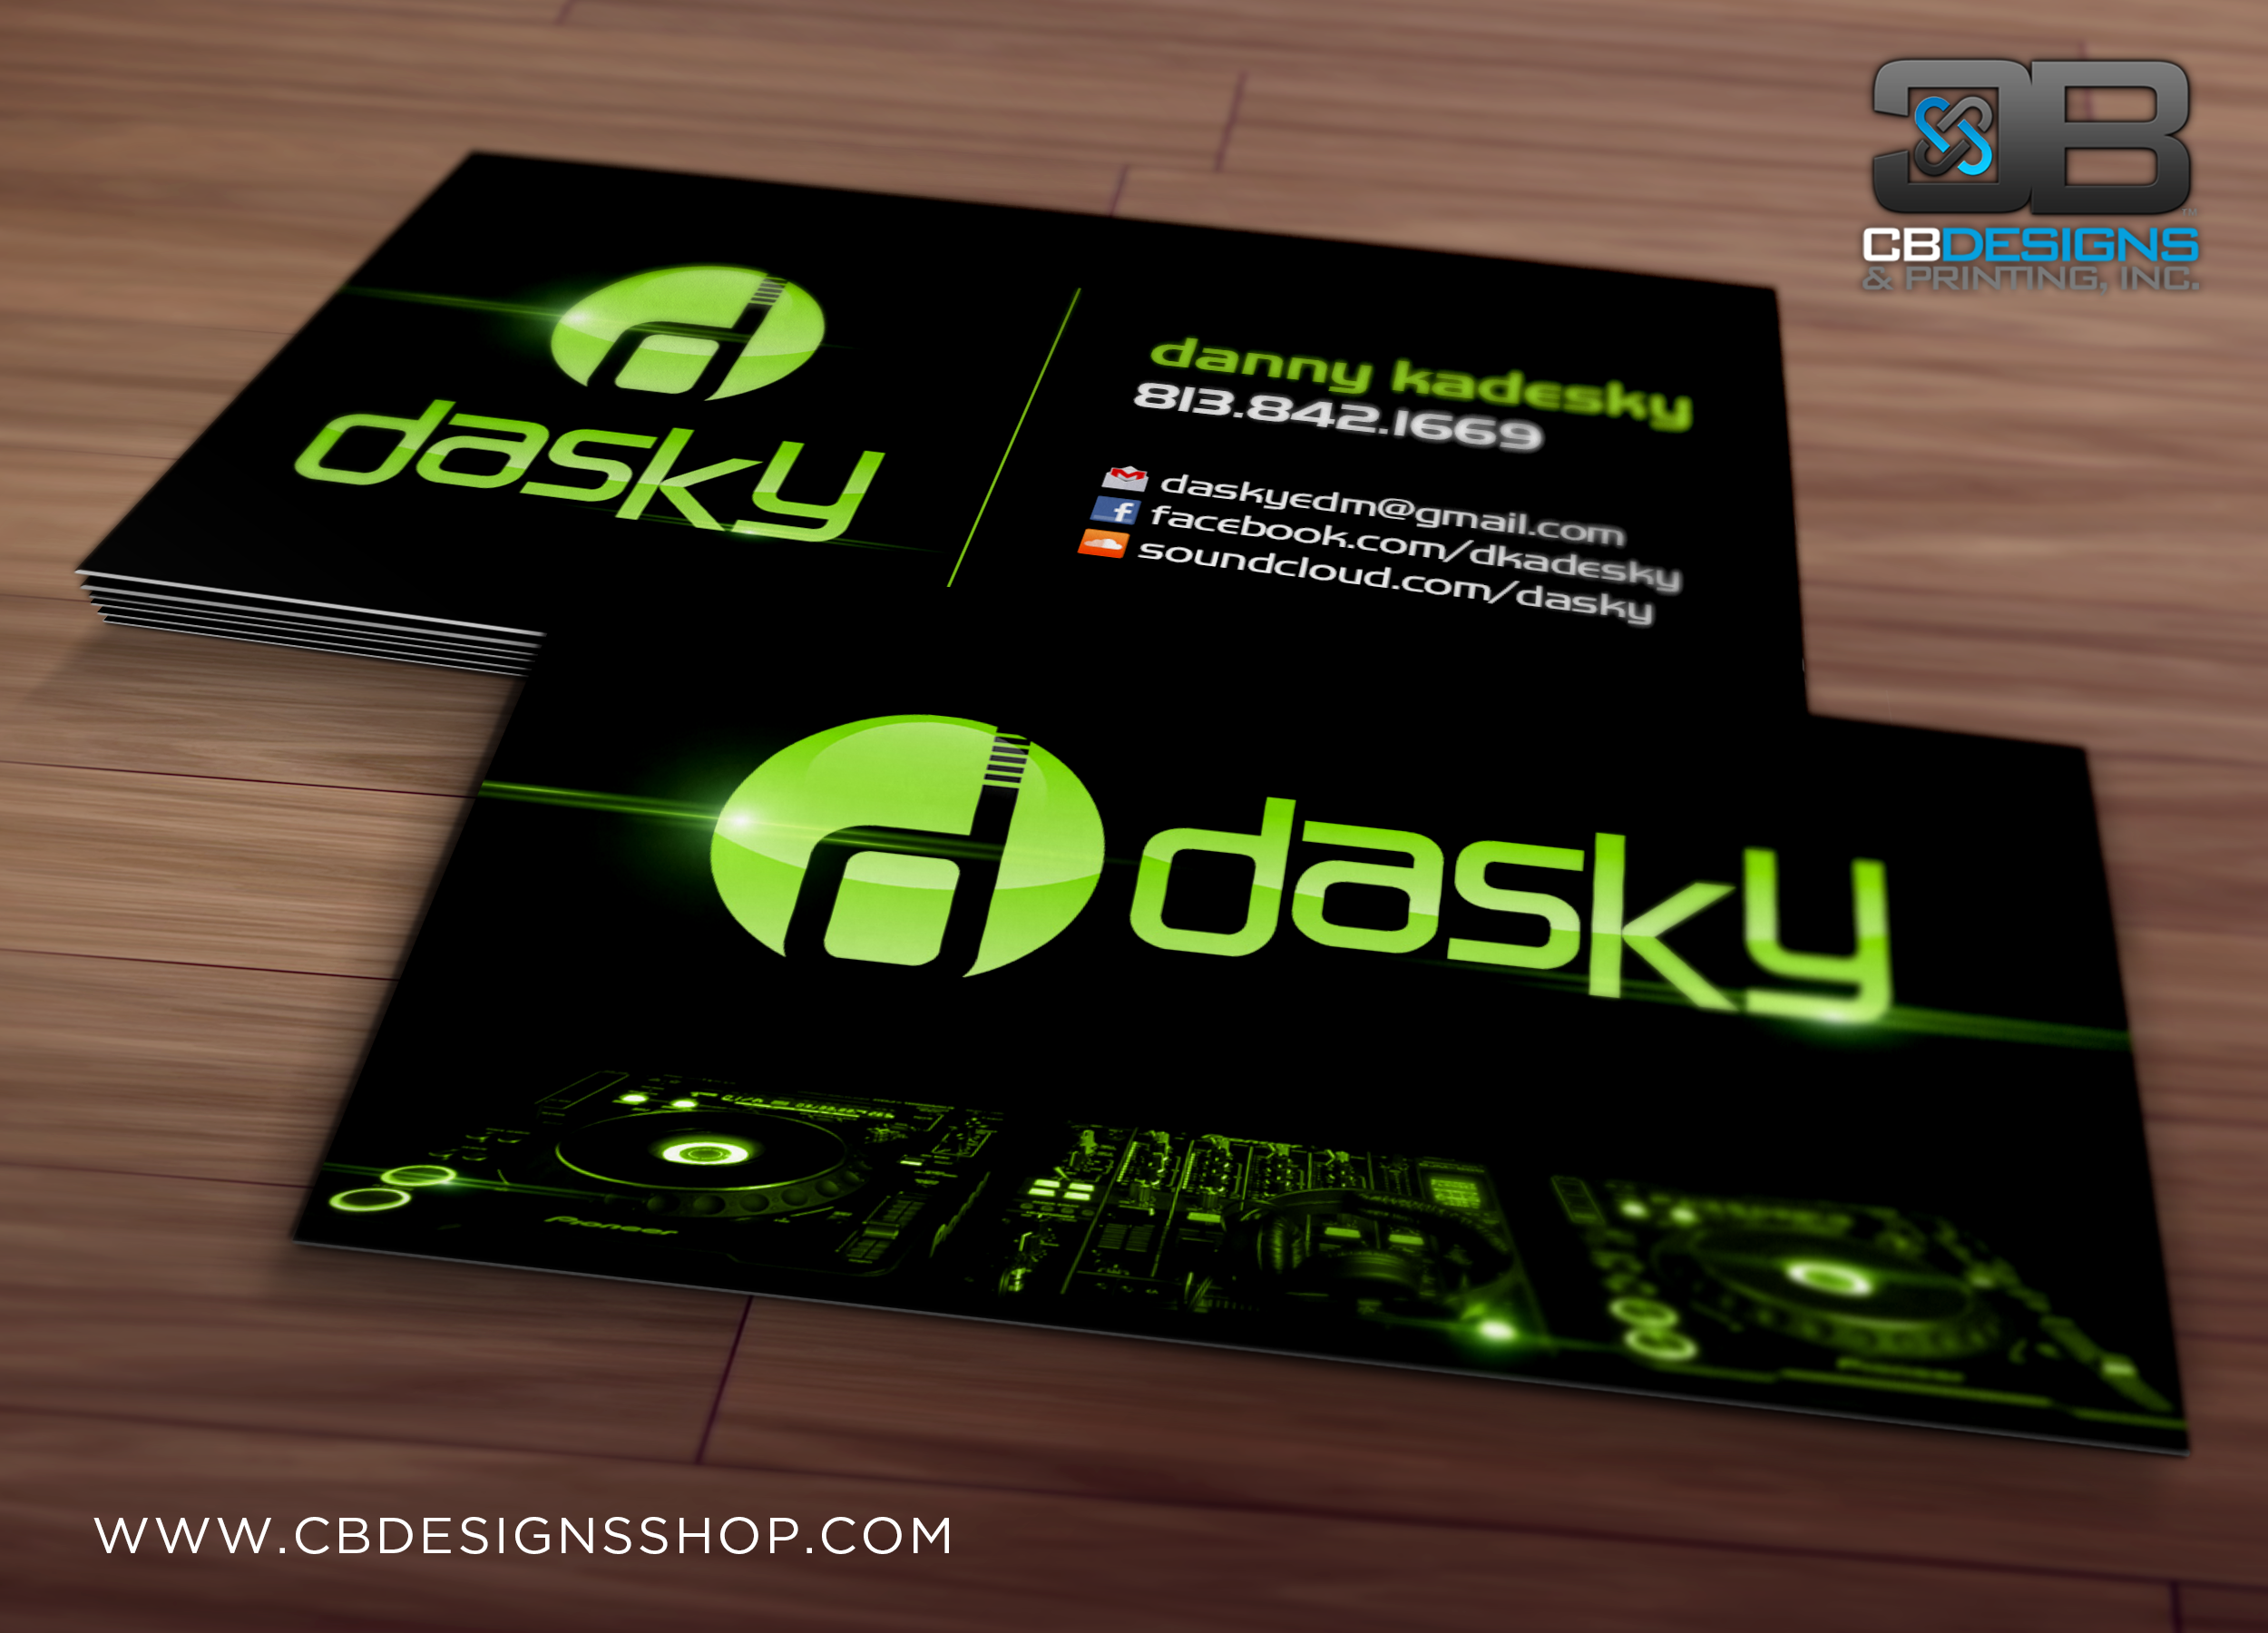 DJ Dasky - Business Card Design | www.cbdesignsshop.com | CB Designs ...